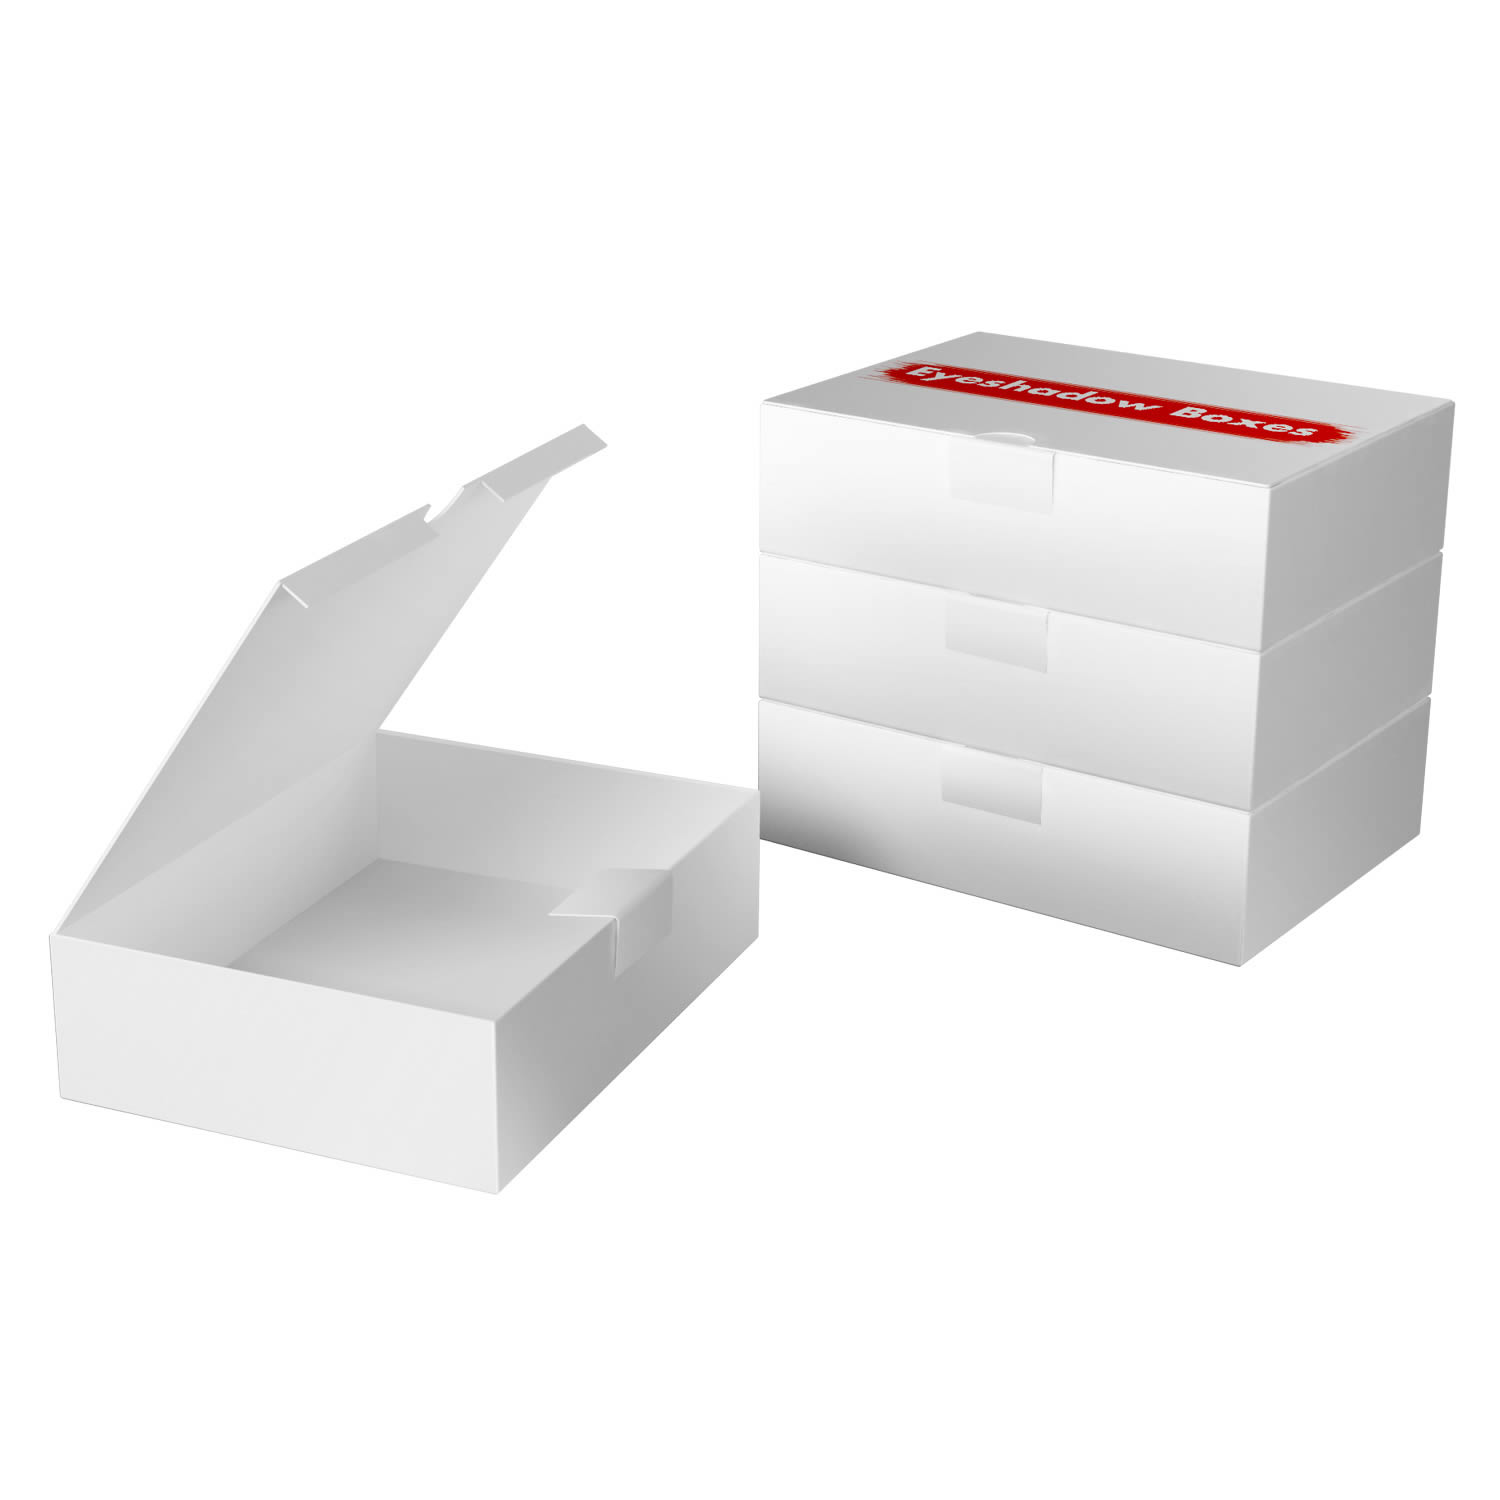 How to Design Packaging Box?